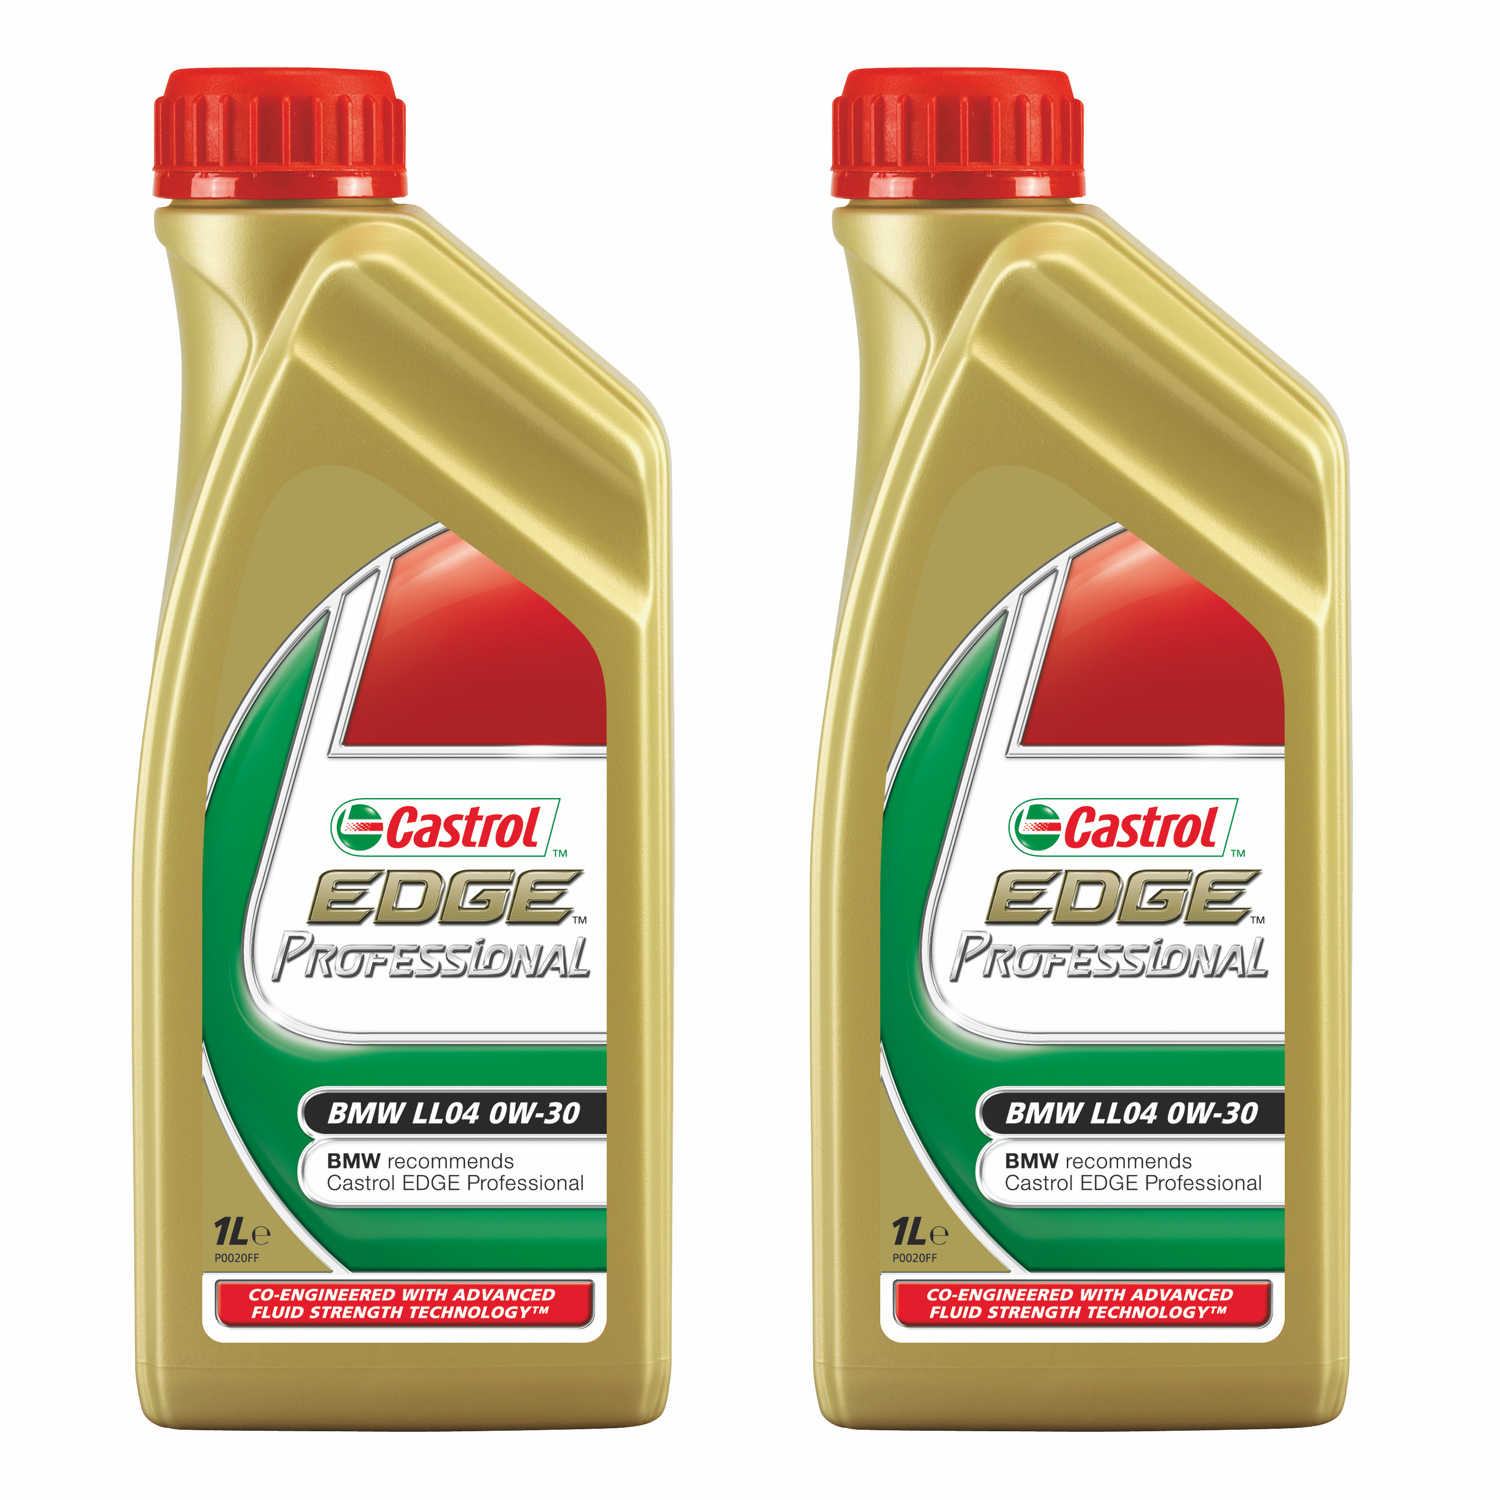 castrol edge professional fully synthetic ll04 0w30 bmw engine oil refill 2x1l ebay. Black Bedroom Furniture Sets. Home Design Ideas